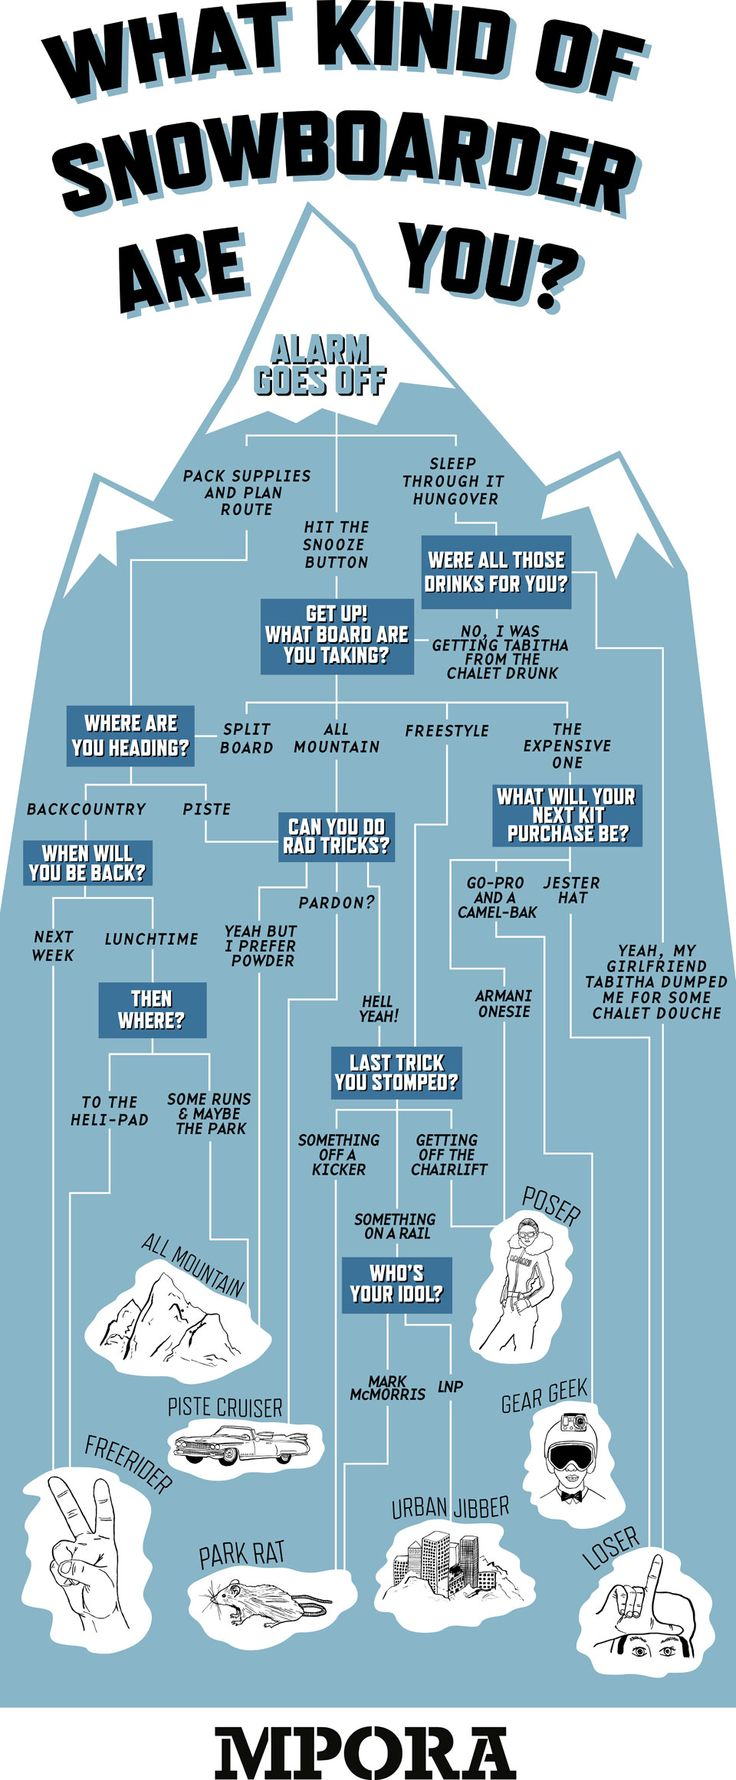 what kind of snowboarder are you infographic